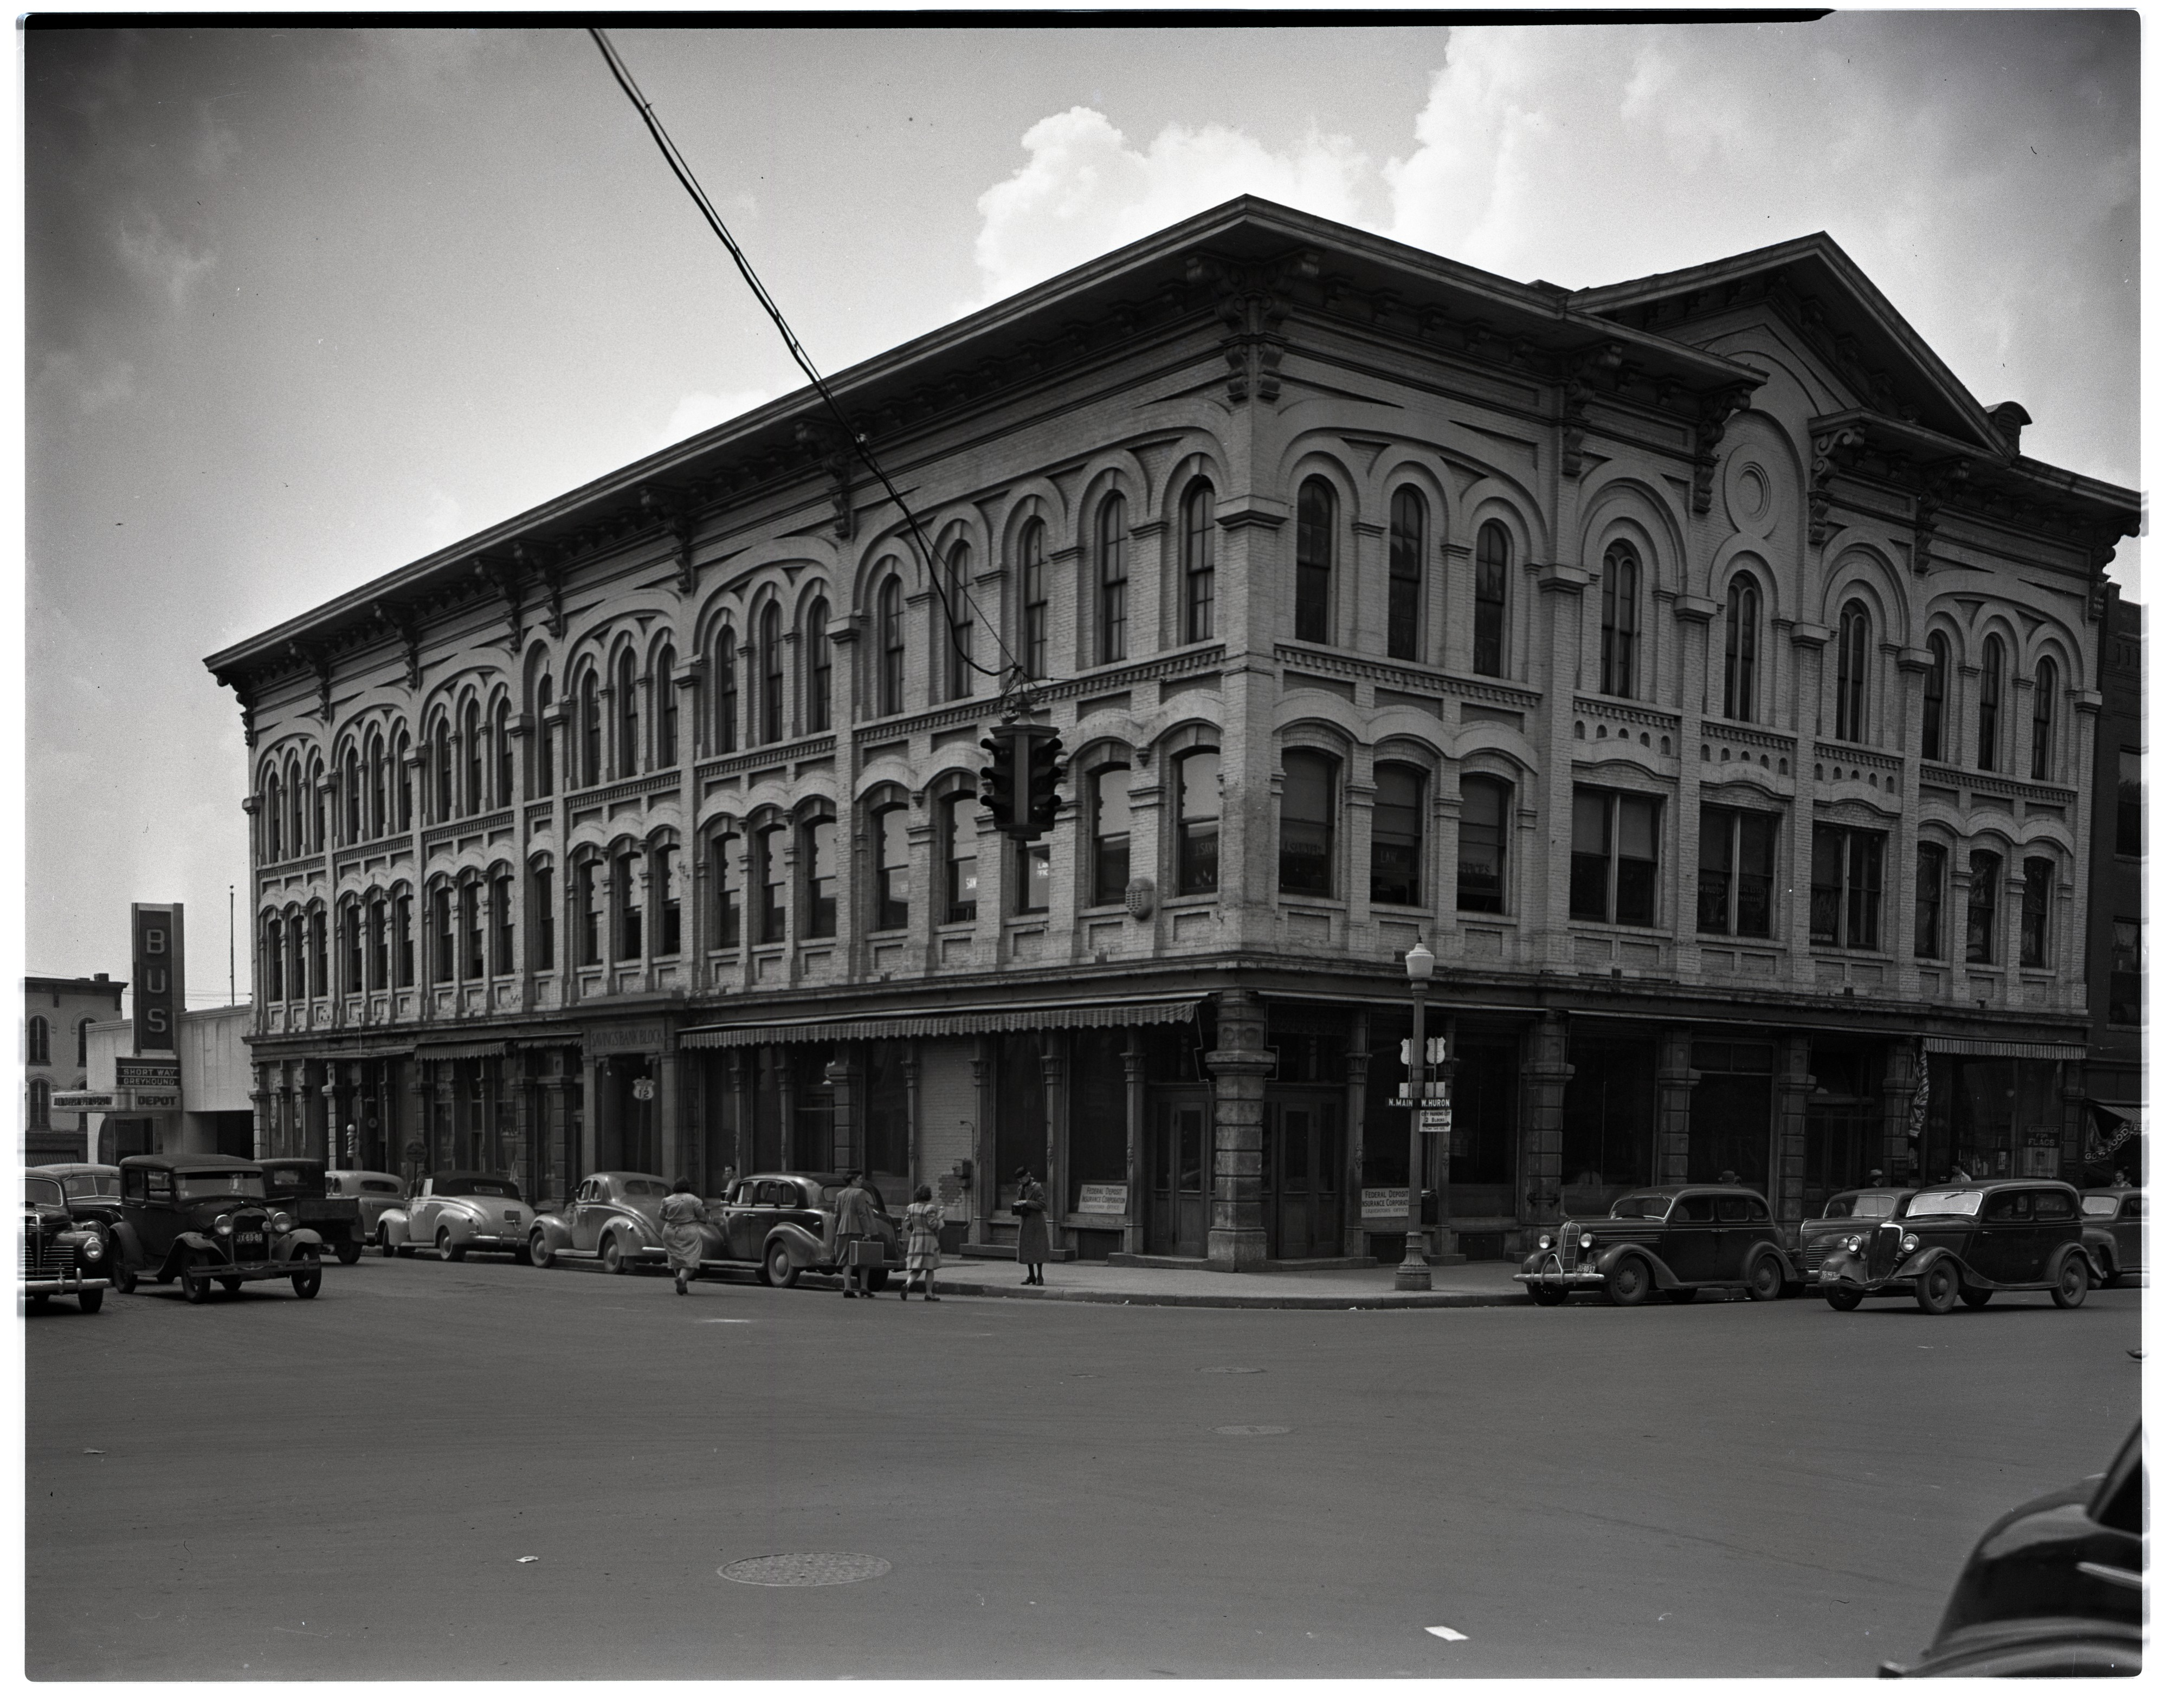 Ann Arbor Savings Bank Building, Bought by Allenel for Future Hotel, June 1943 image